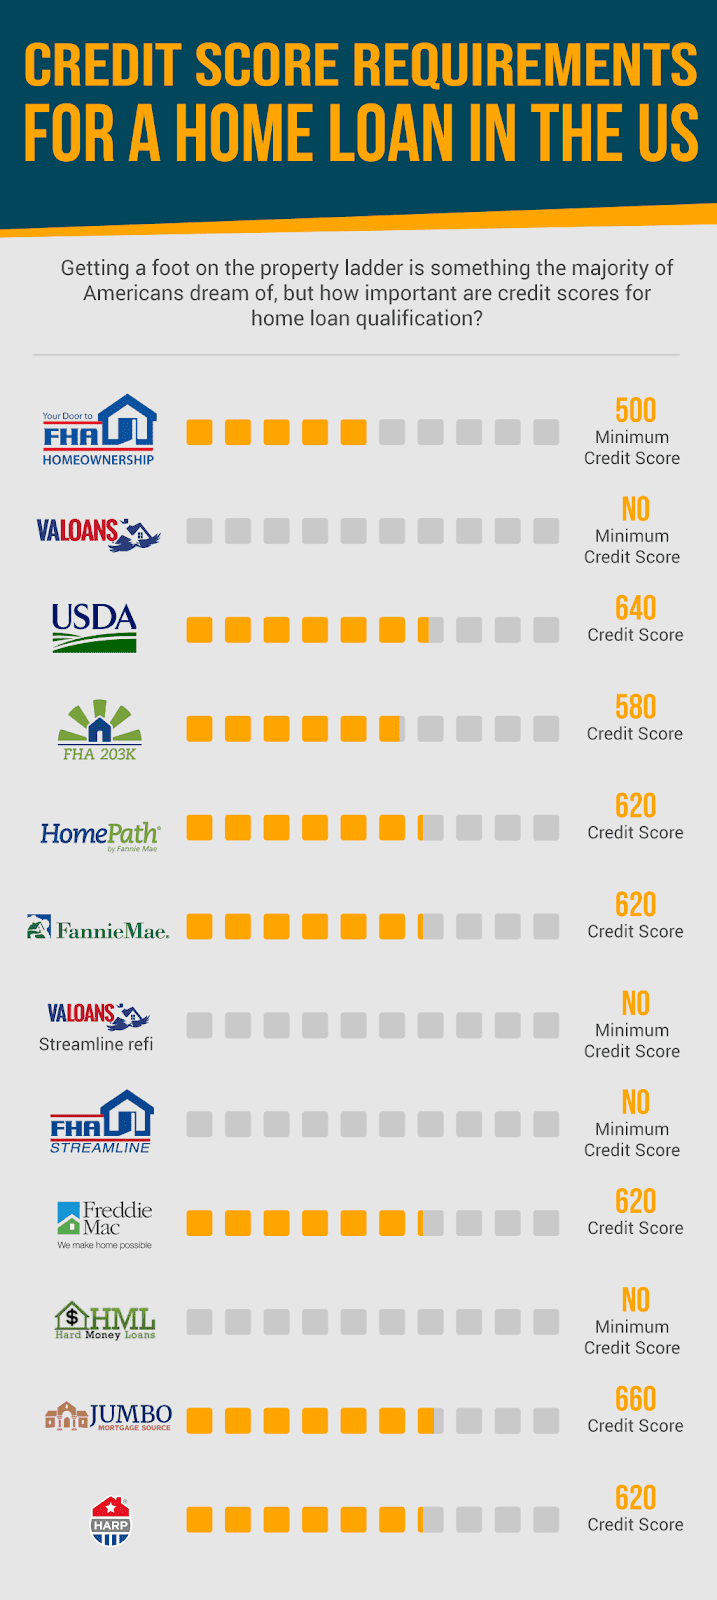 Fico Scores Required For Fha Va Usda And Fannie Mae Mortgage Loans In Ky Credit Score Mortgage Loans Fha Loans